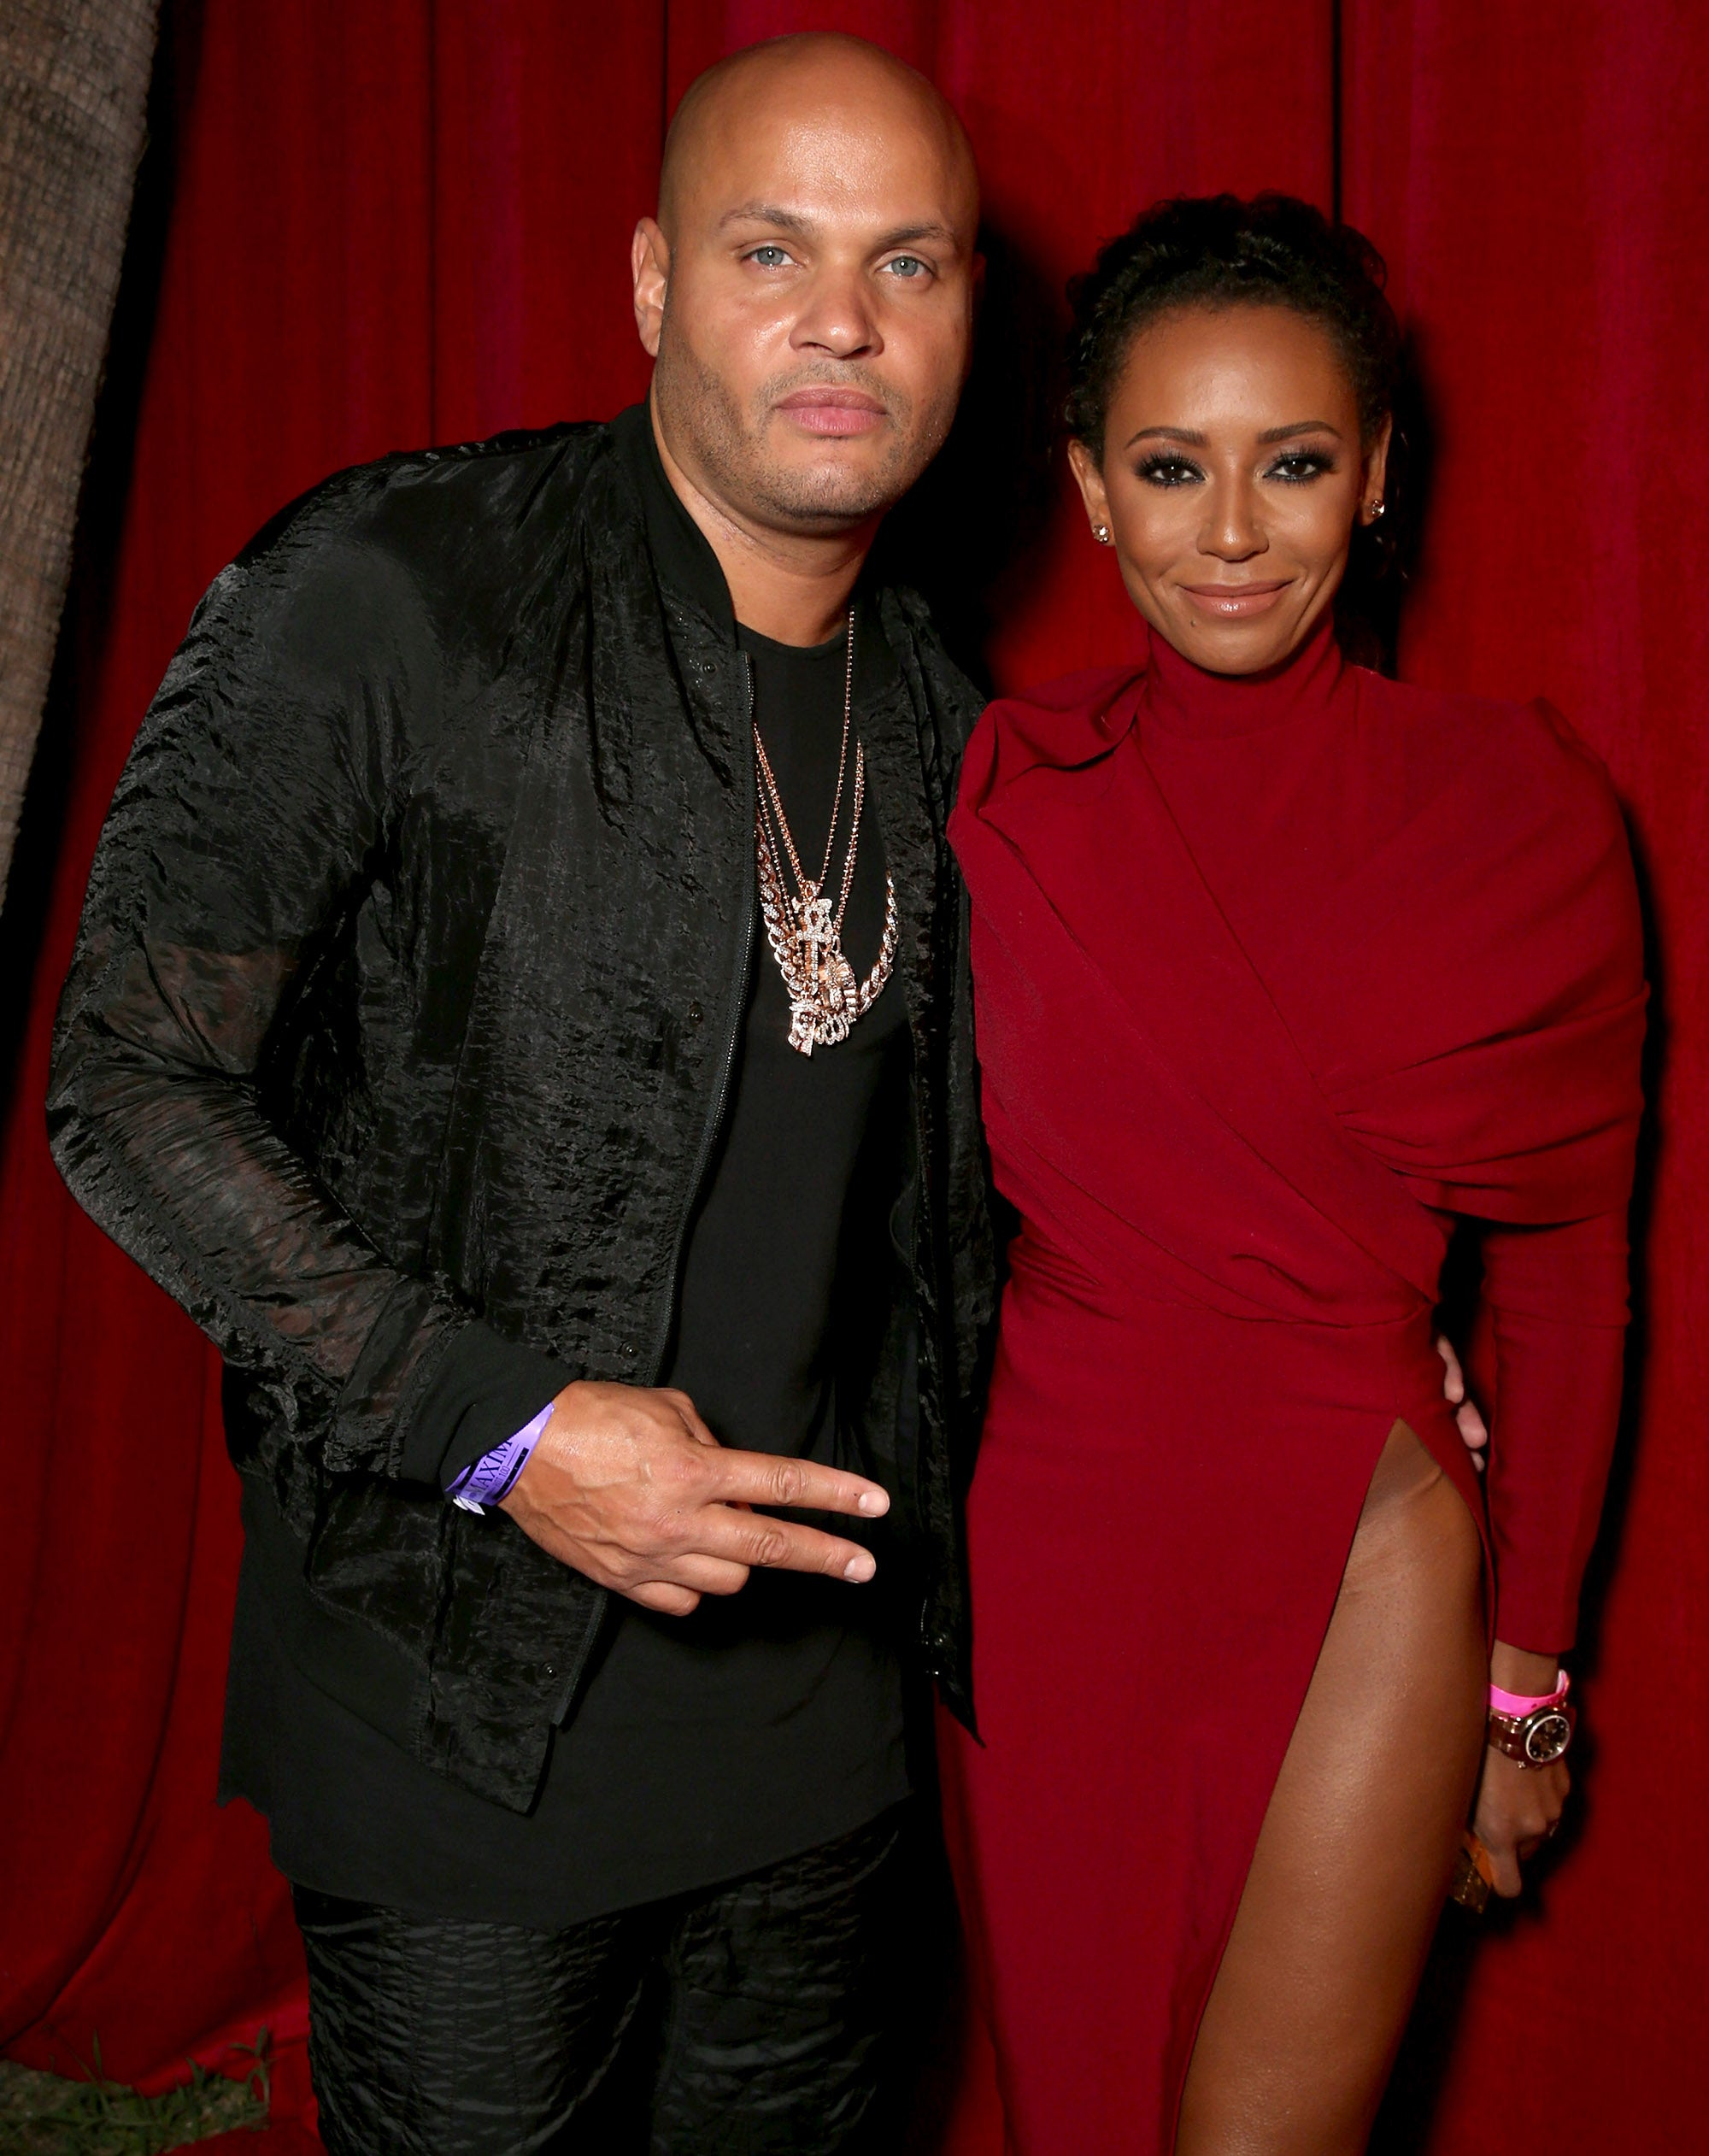 Mel B Files For Divorce From Stephen Belafonte After Nearly 10 Years Of Marriage